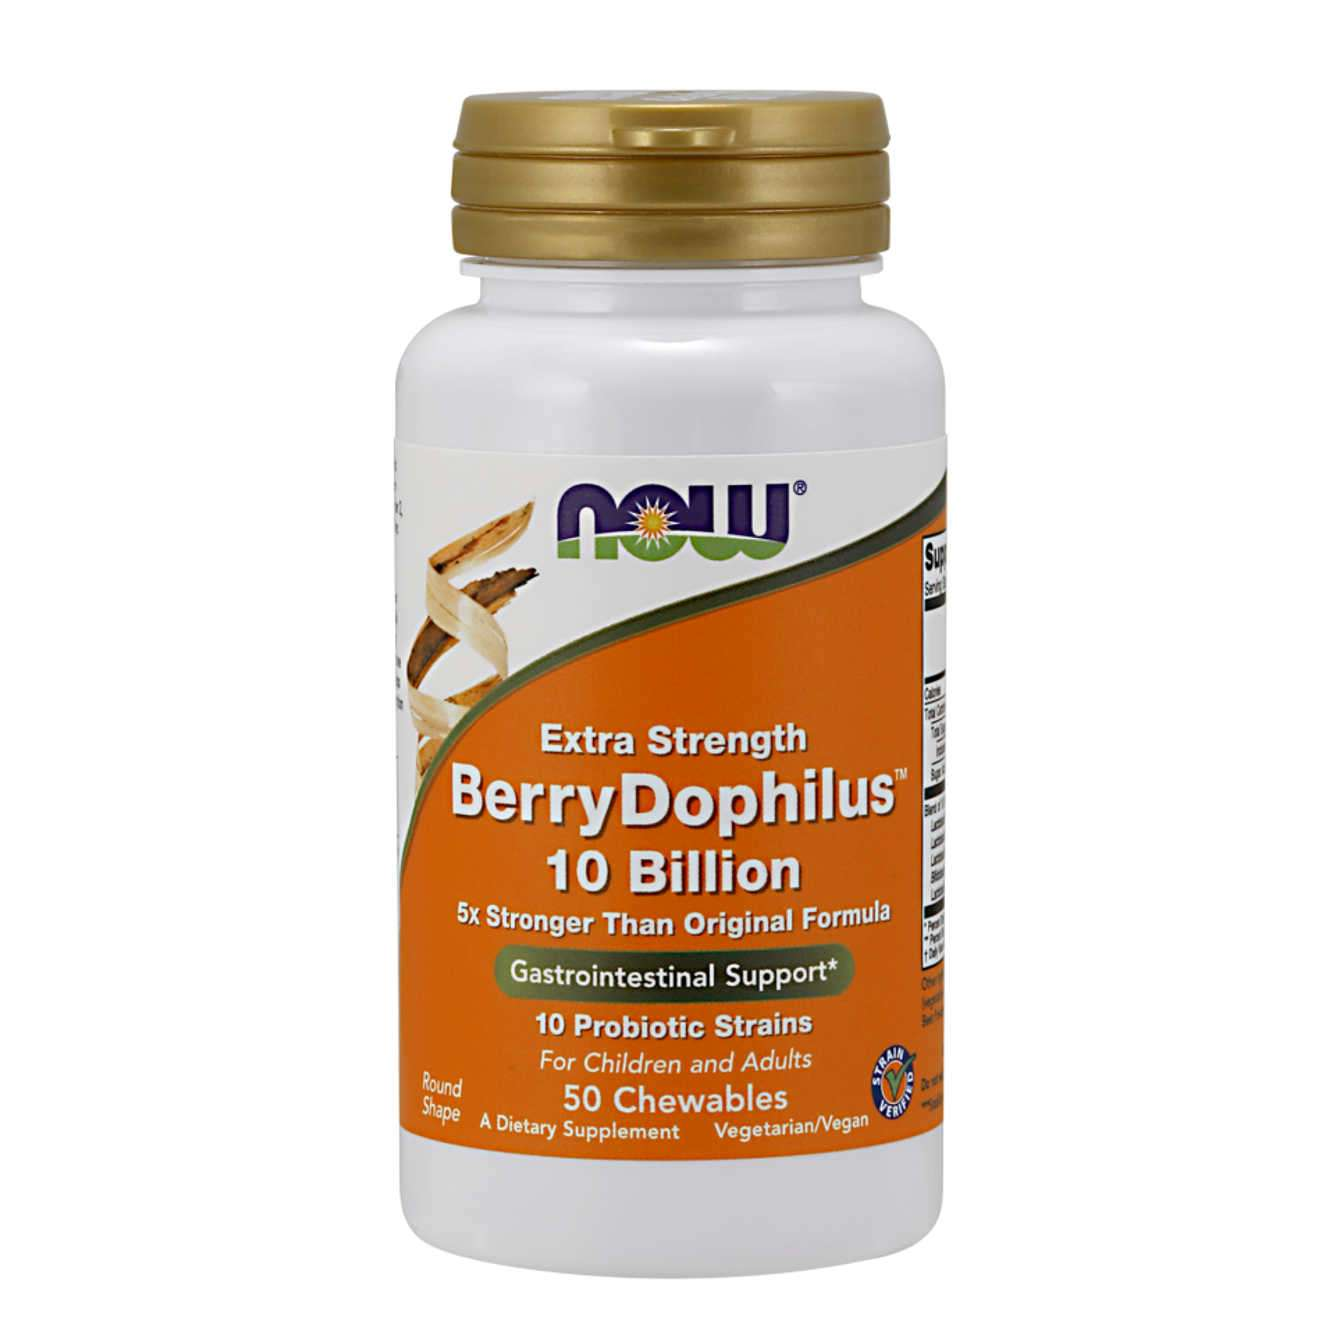 EXTRA STRENGHT BERRYDOPHILUS 10 BILLION - 50 chewable tablets